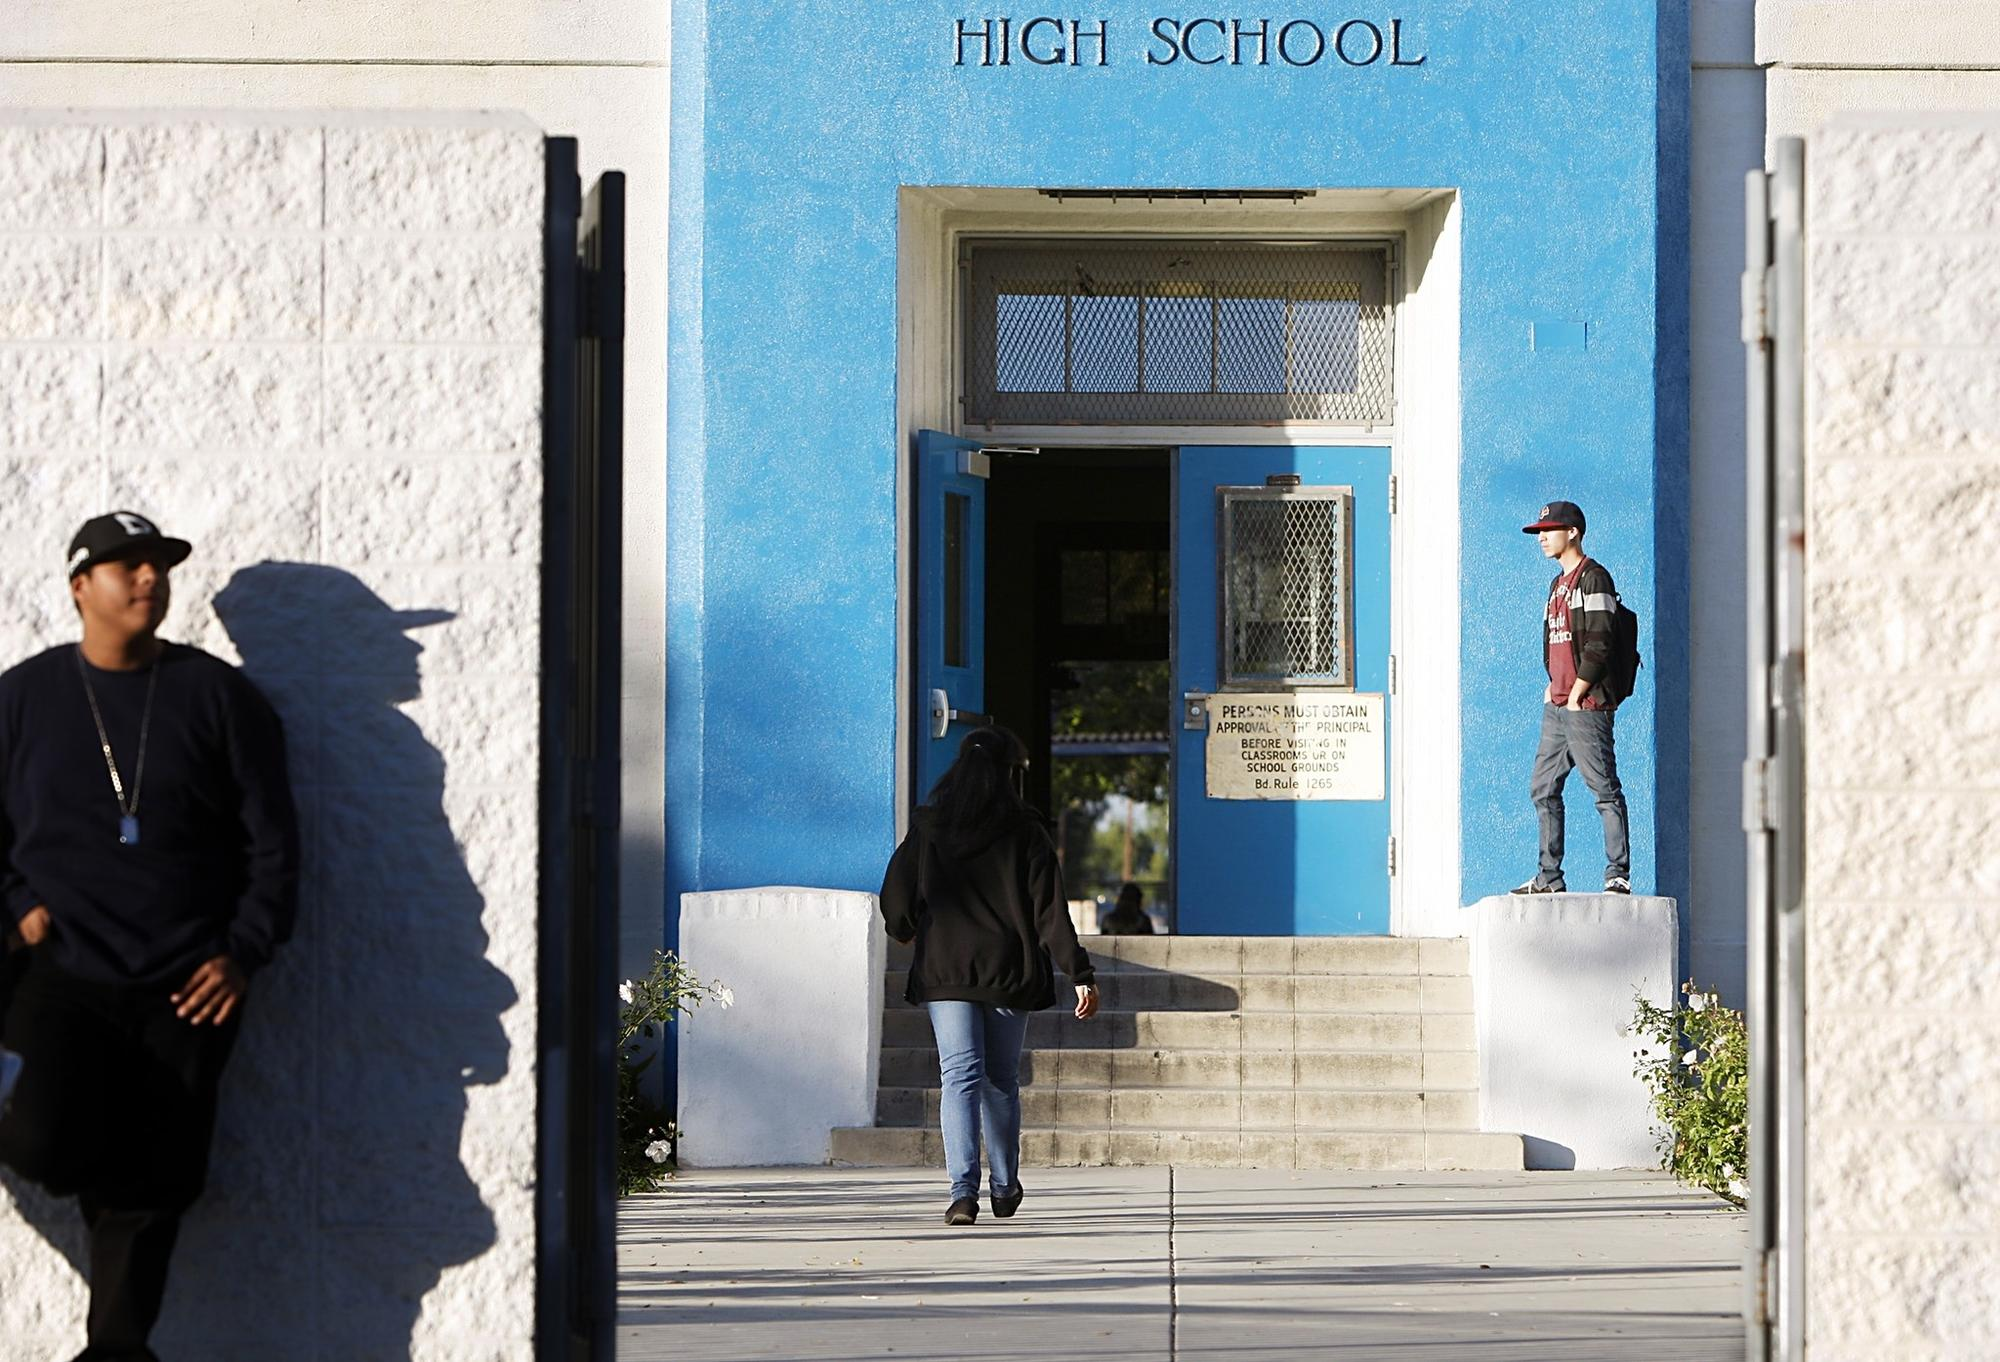 Jordan High School was split into Green Dot, a charter school, and a school run by the Partnership for Los Angeles Schools.